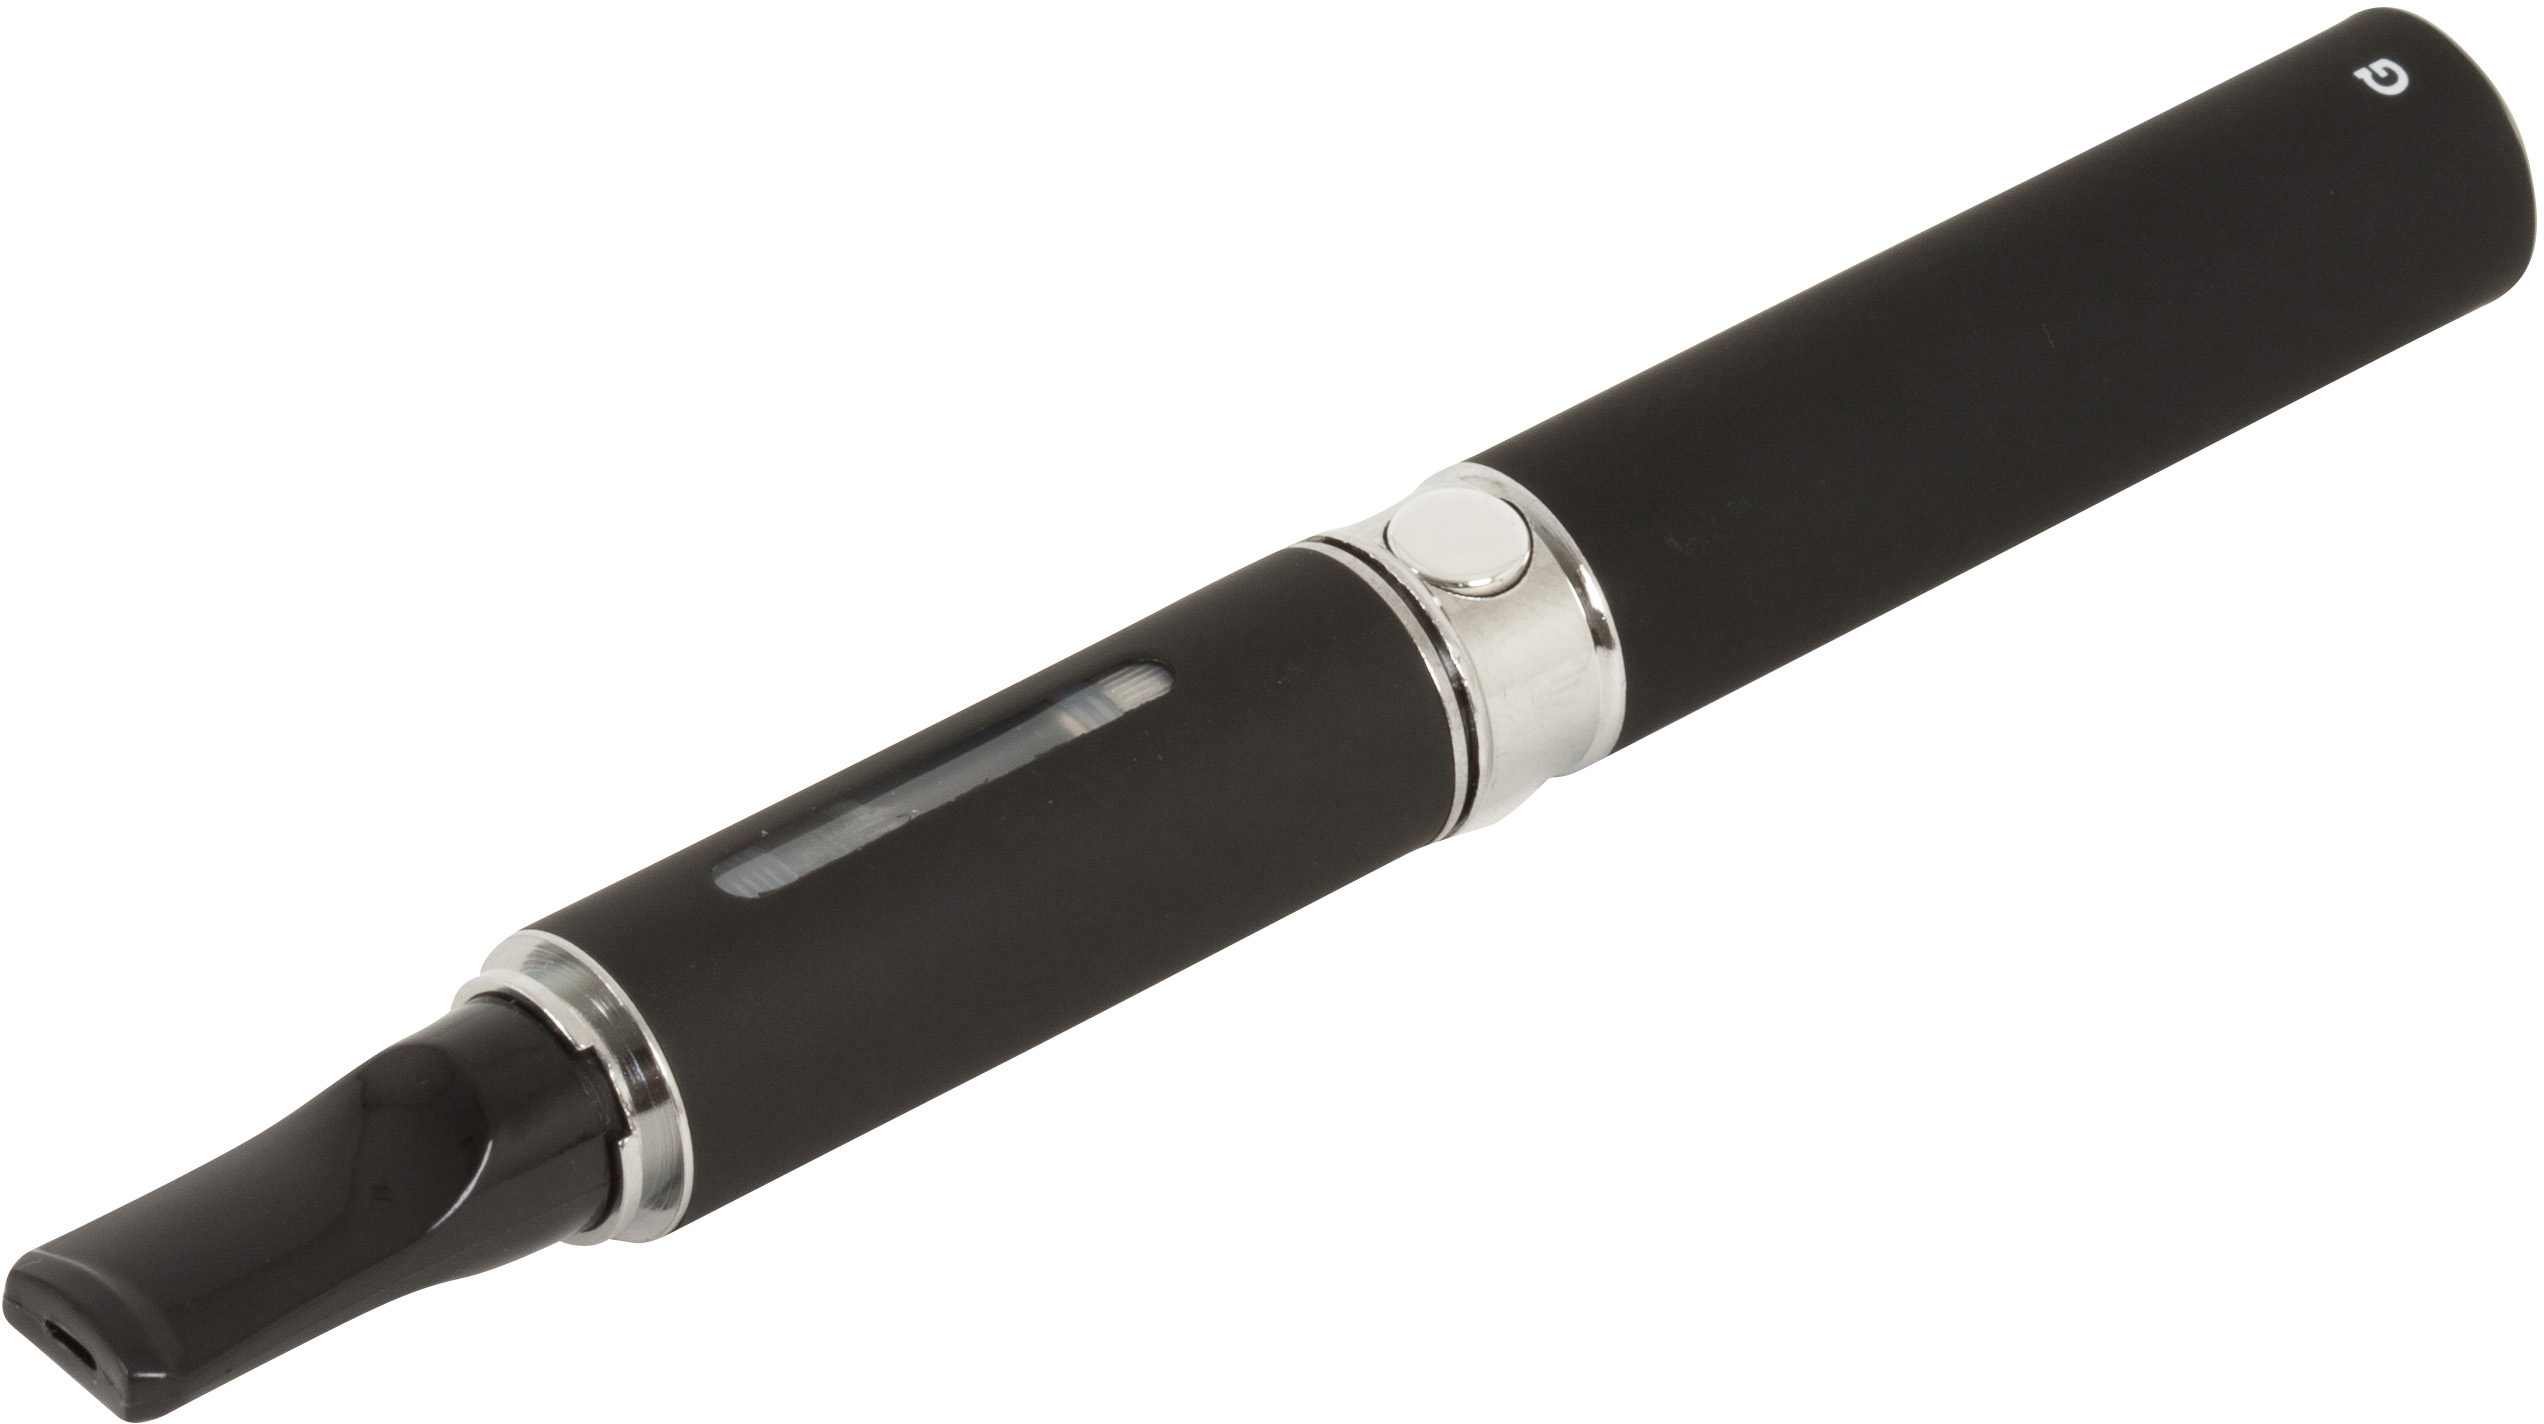 Why Purchase a Vaporizer Pen